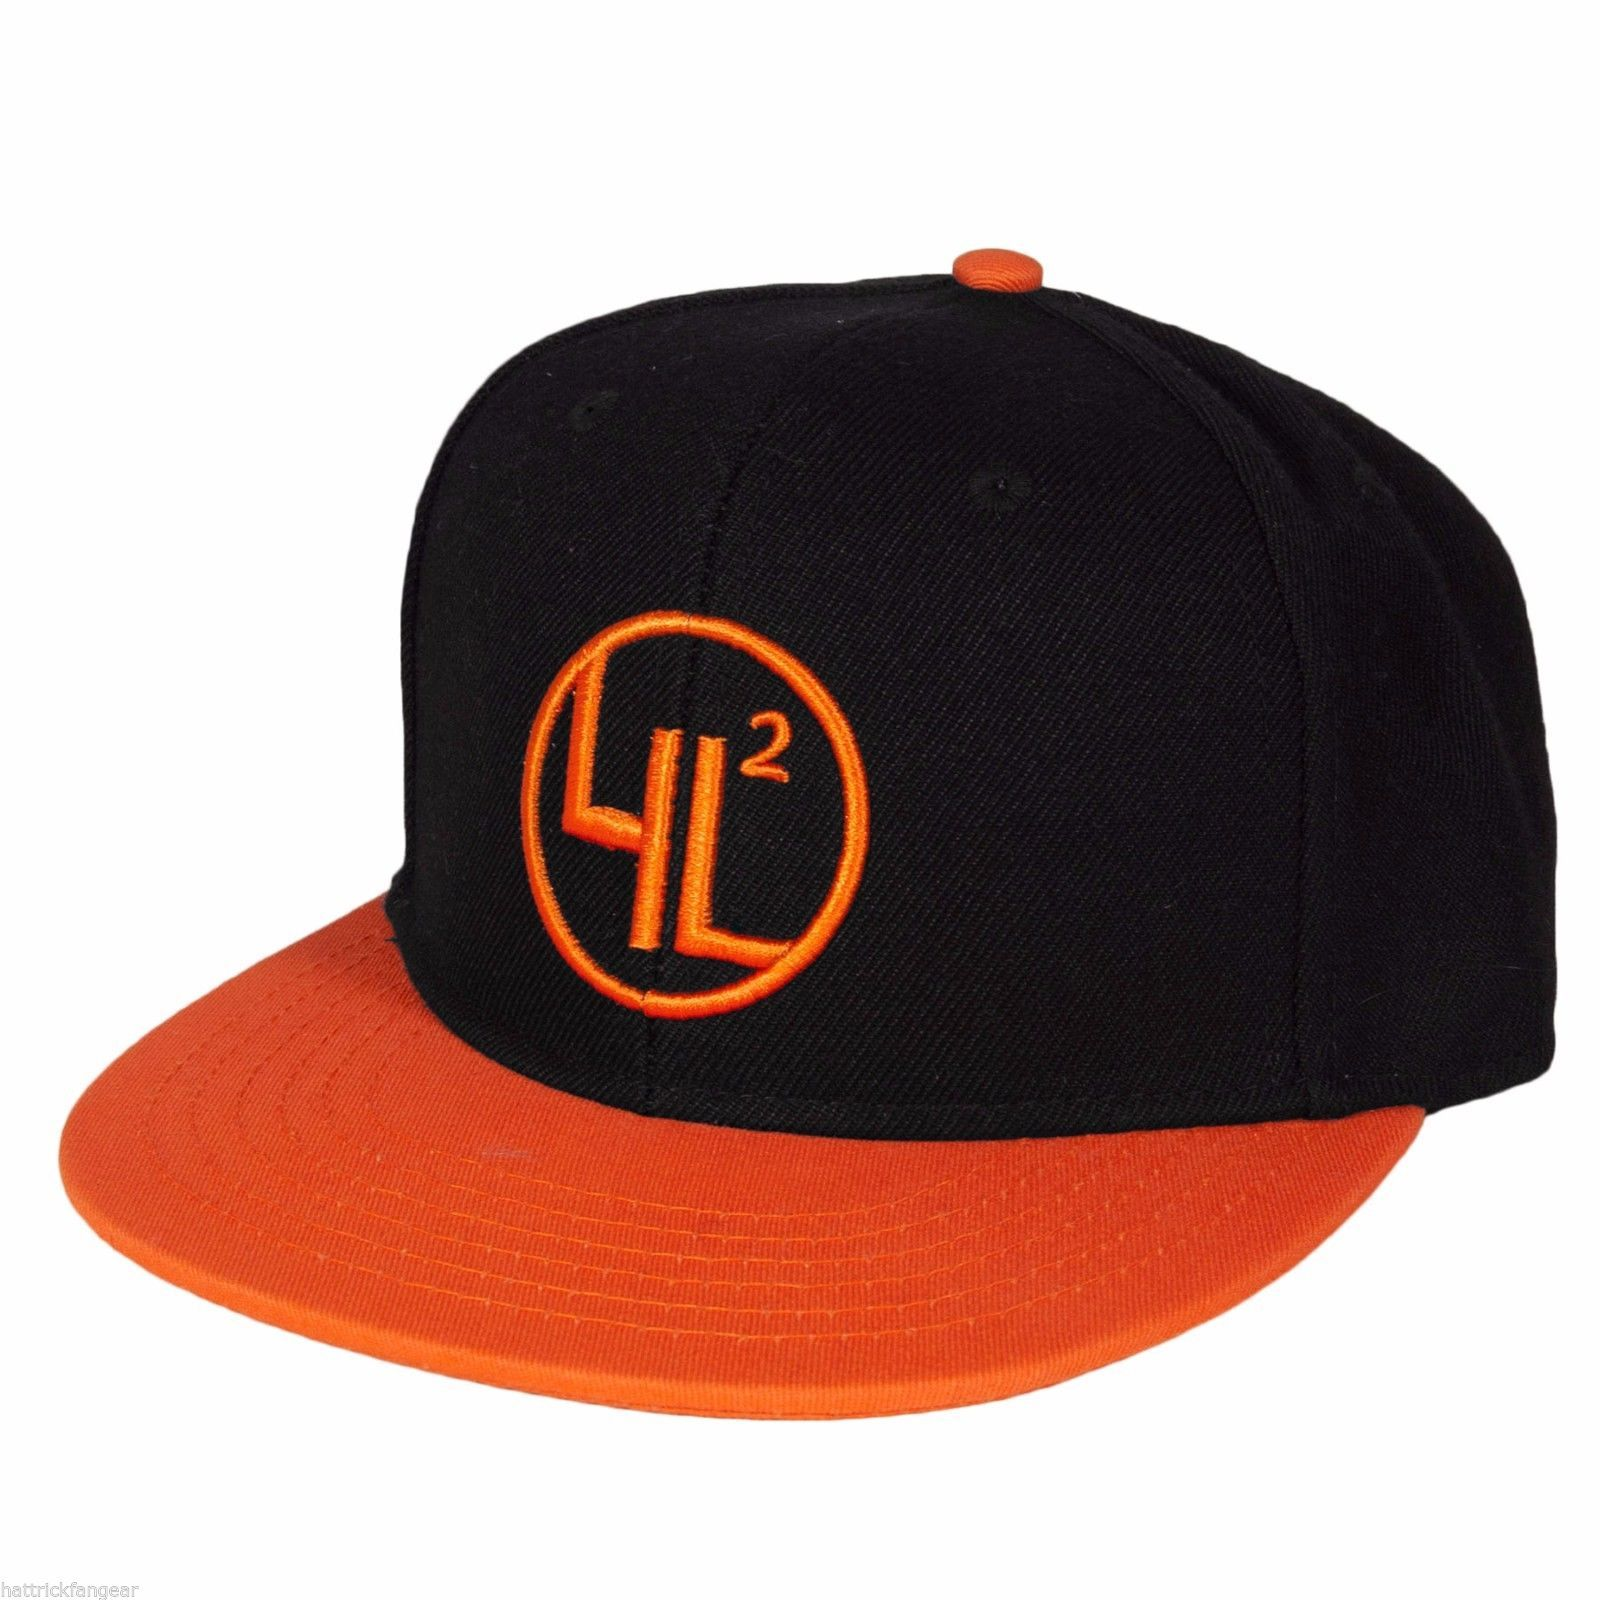 SAUCE HOCKEY LIFESTYLE APPAREL 4L2 STRETCH FIT  HOCKEY CAP/HAT - L/XL